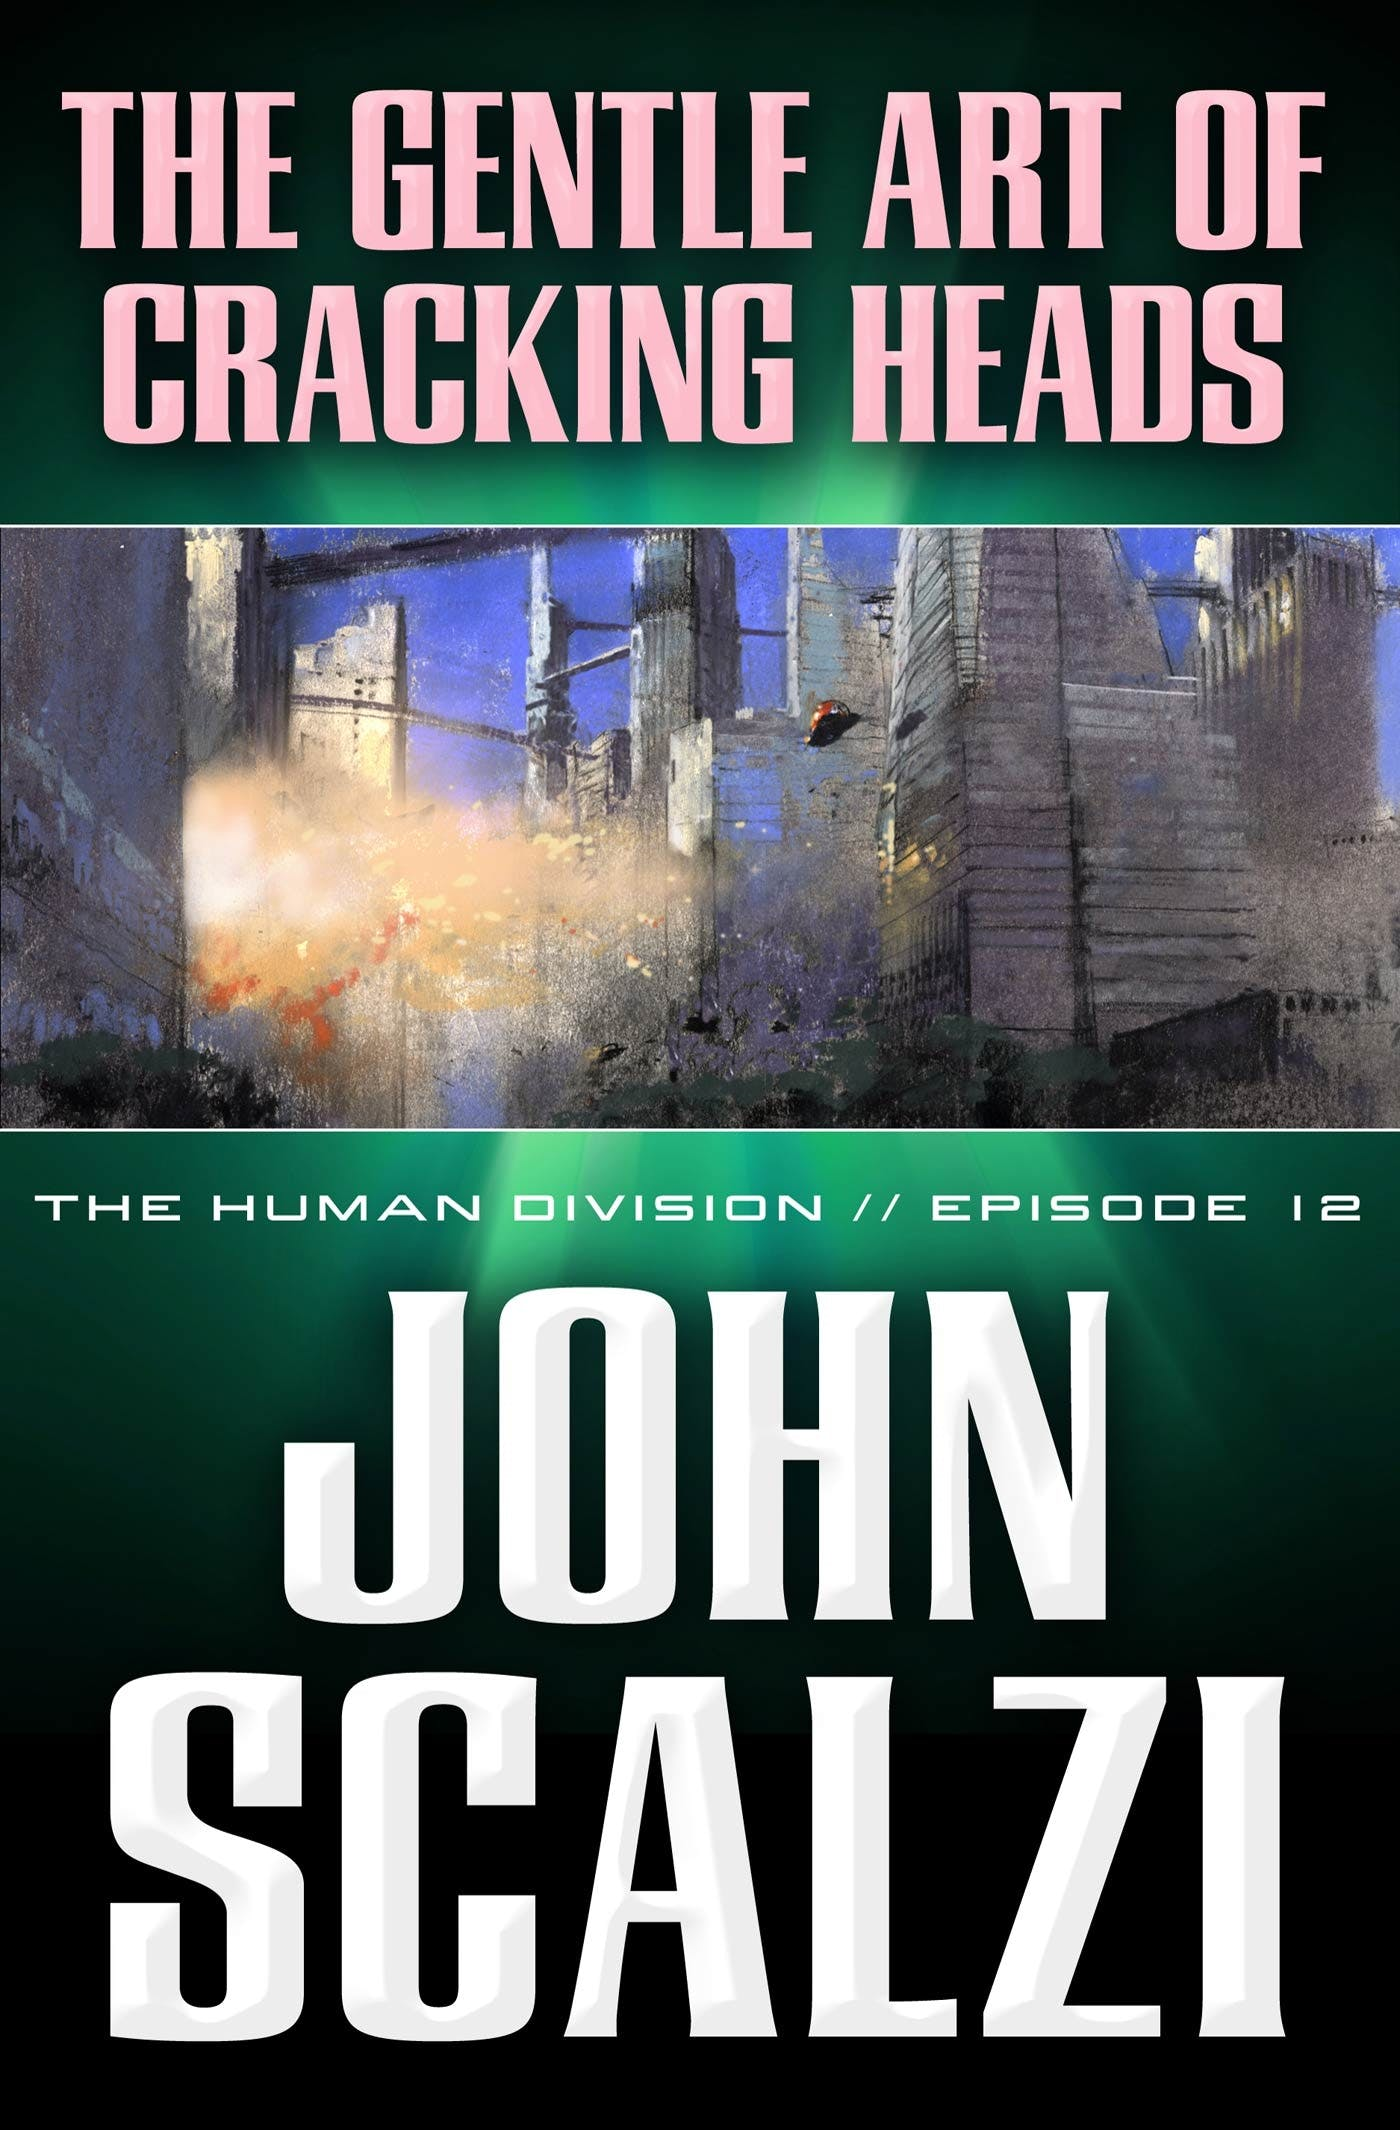 Image of The Human Division #12: The Gentle Art of Cracking Heads